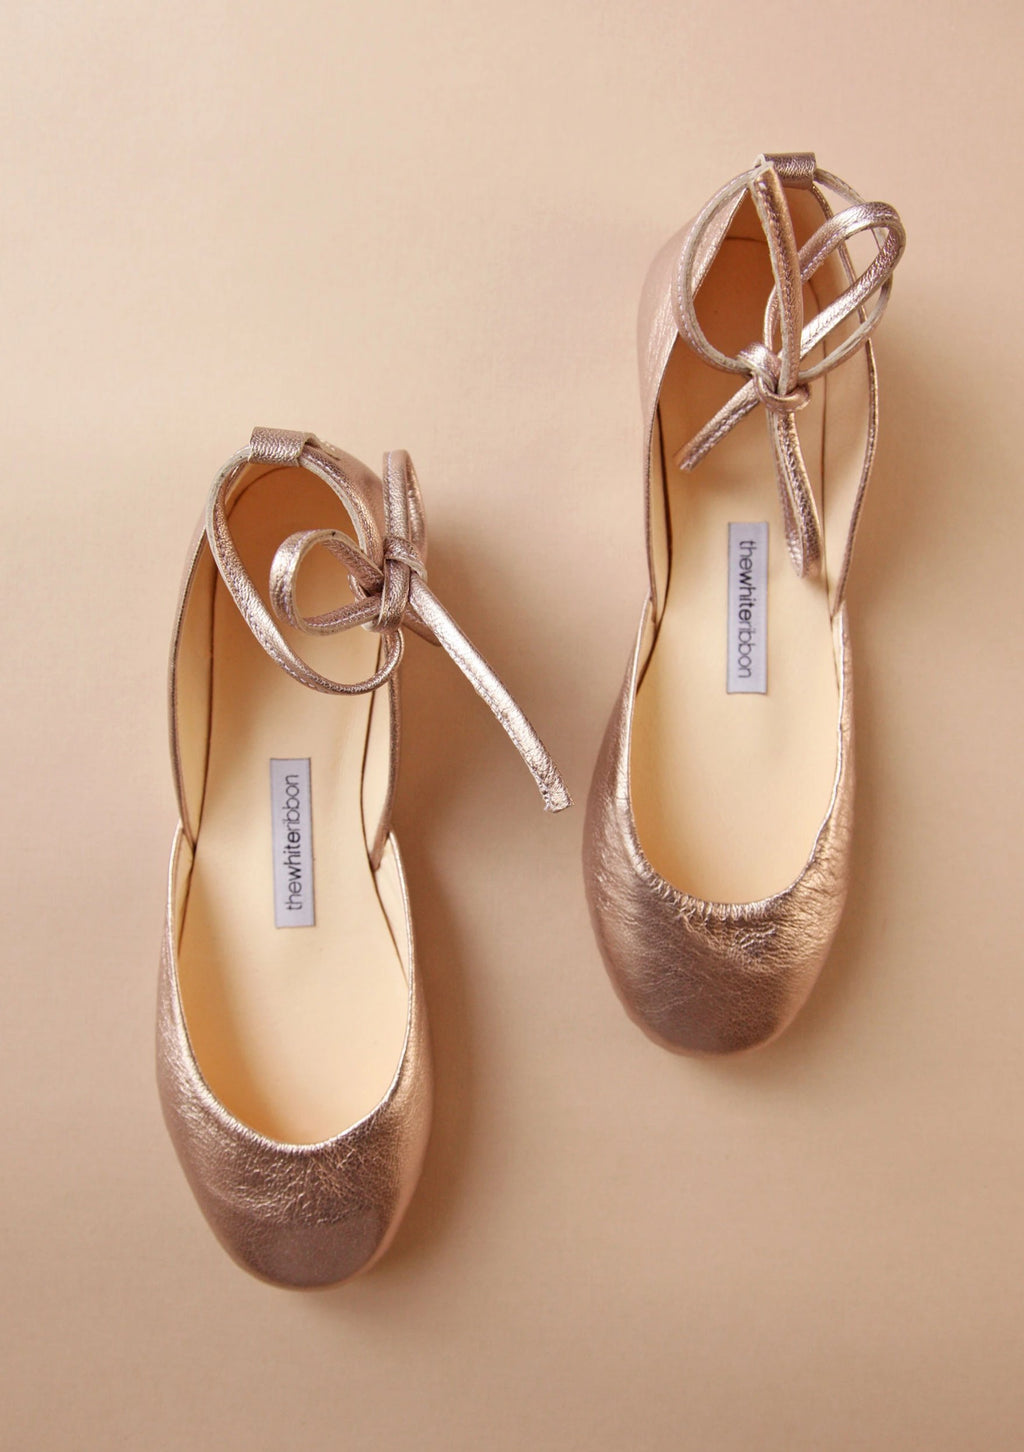 Blush gold ballet flats with leather ankle ribbons